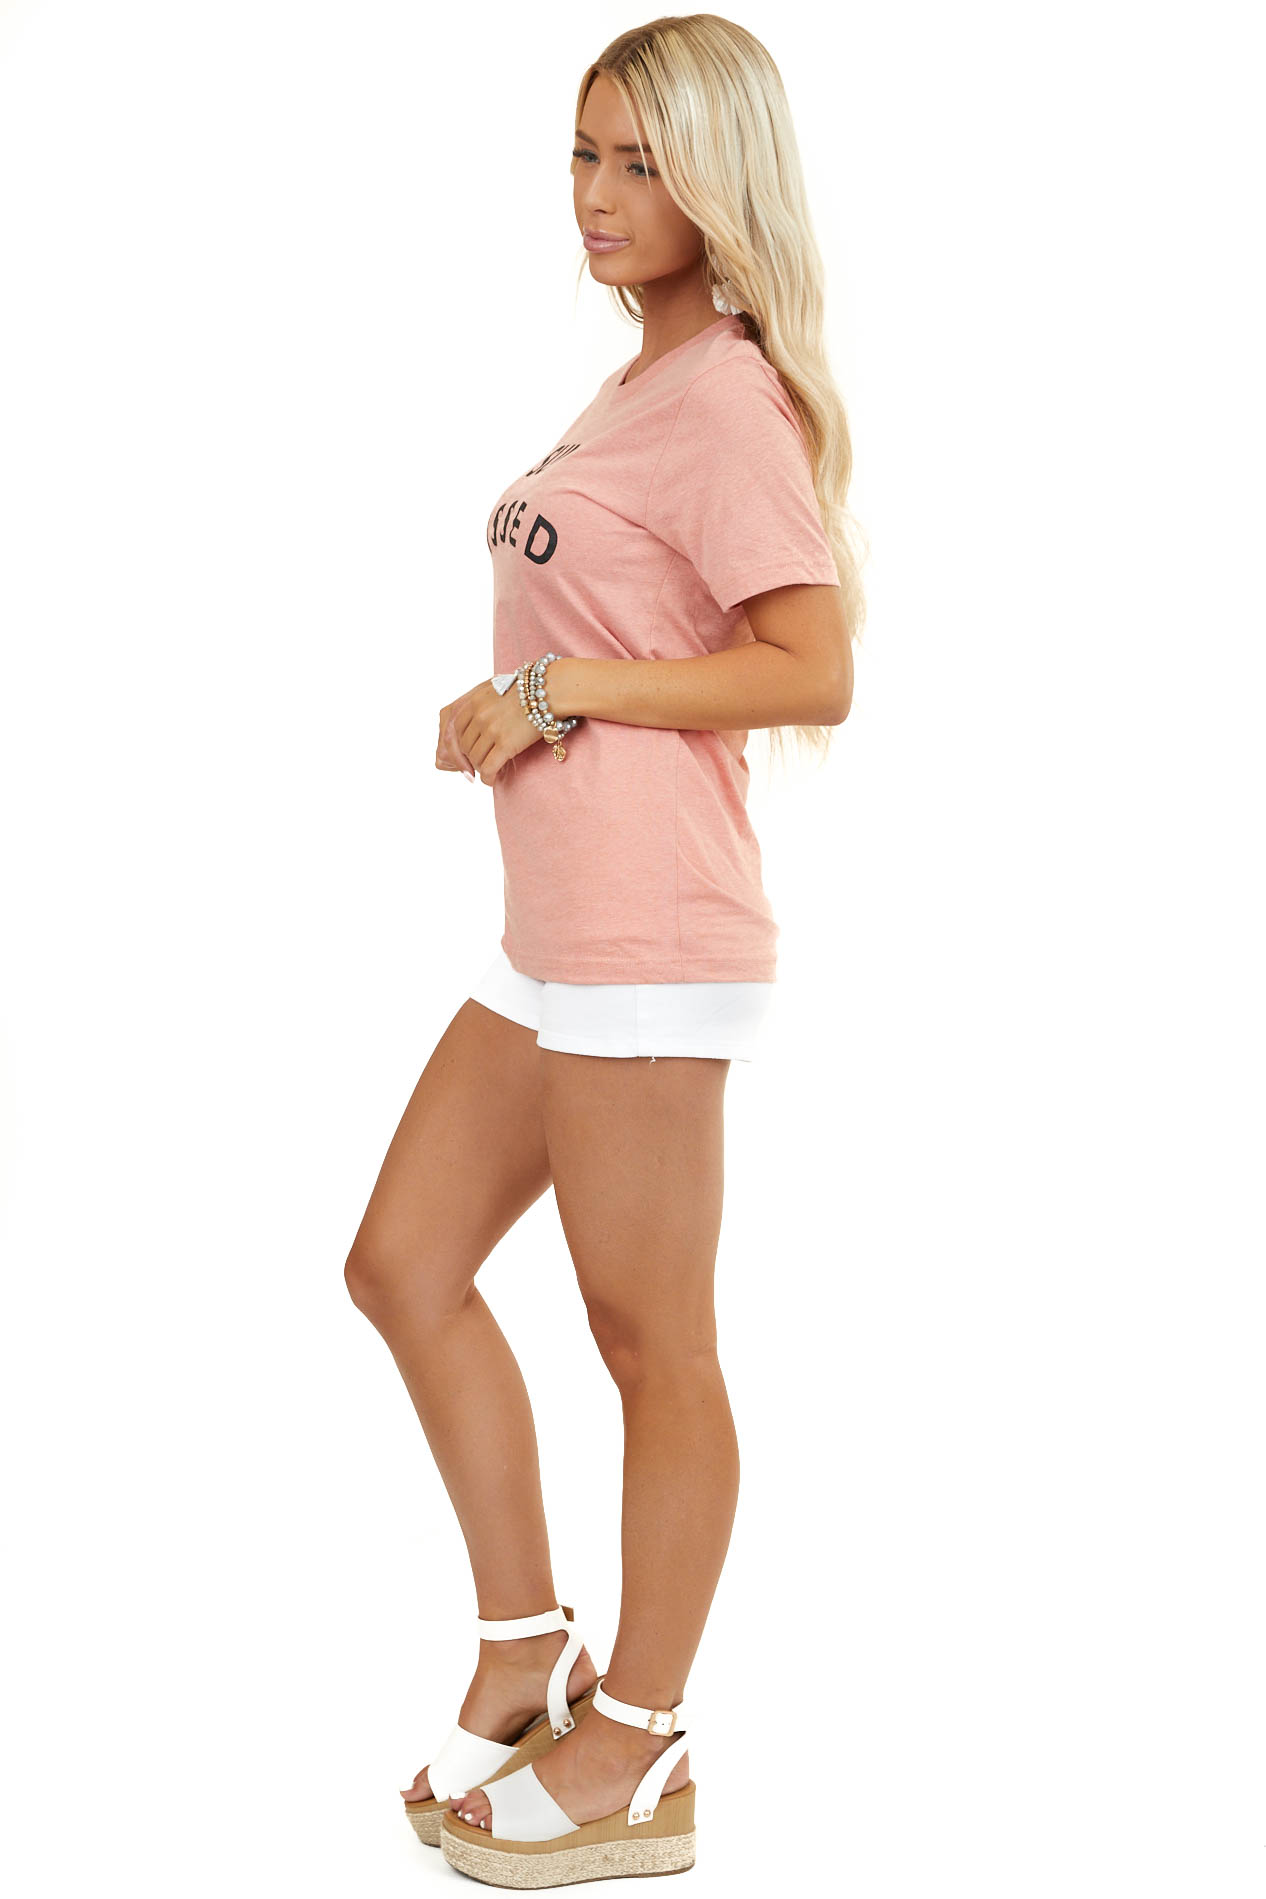 Heathered Salmon Short Sleeve 'Sun Kissed' Graphic Top